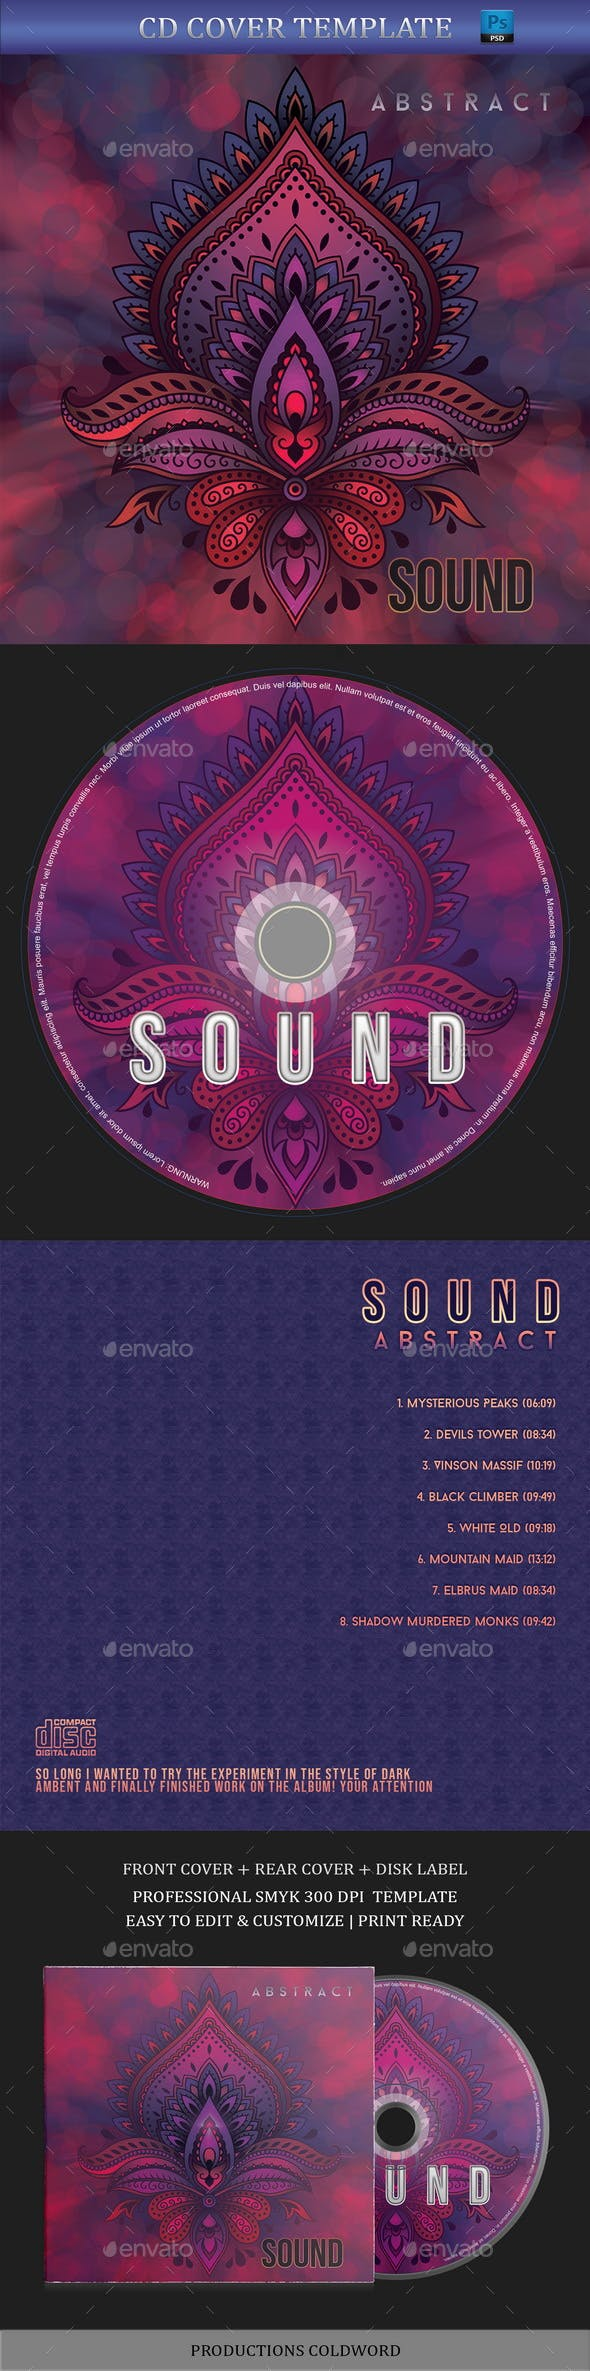 Abstract CD Cover Artwork Template